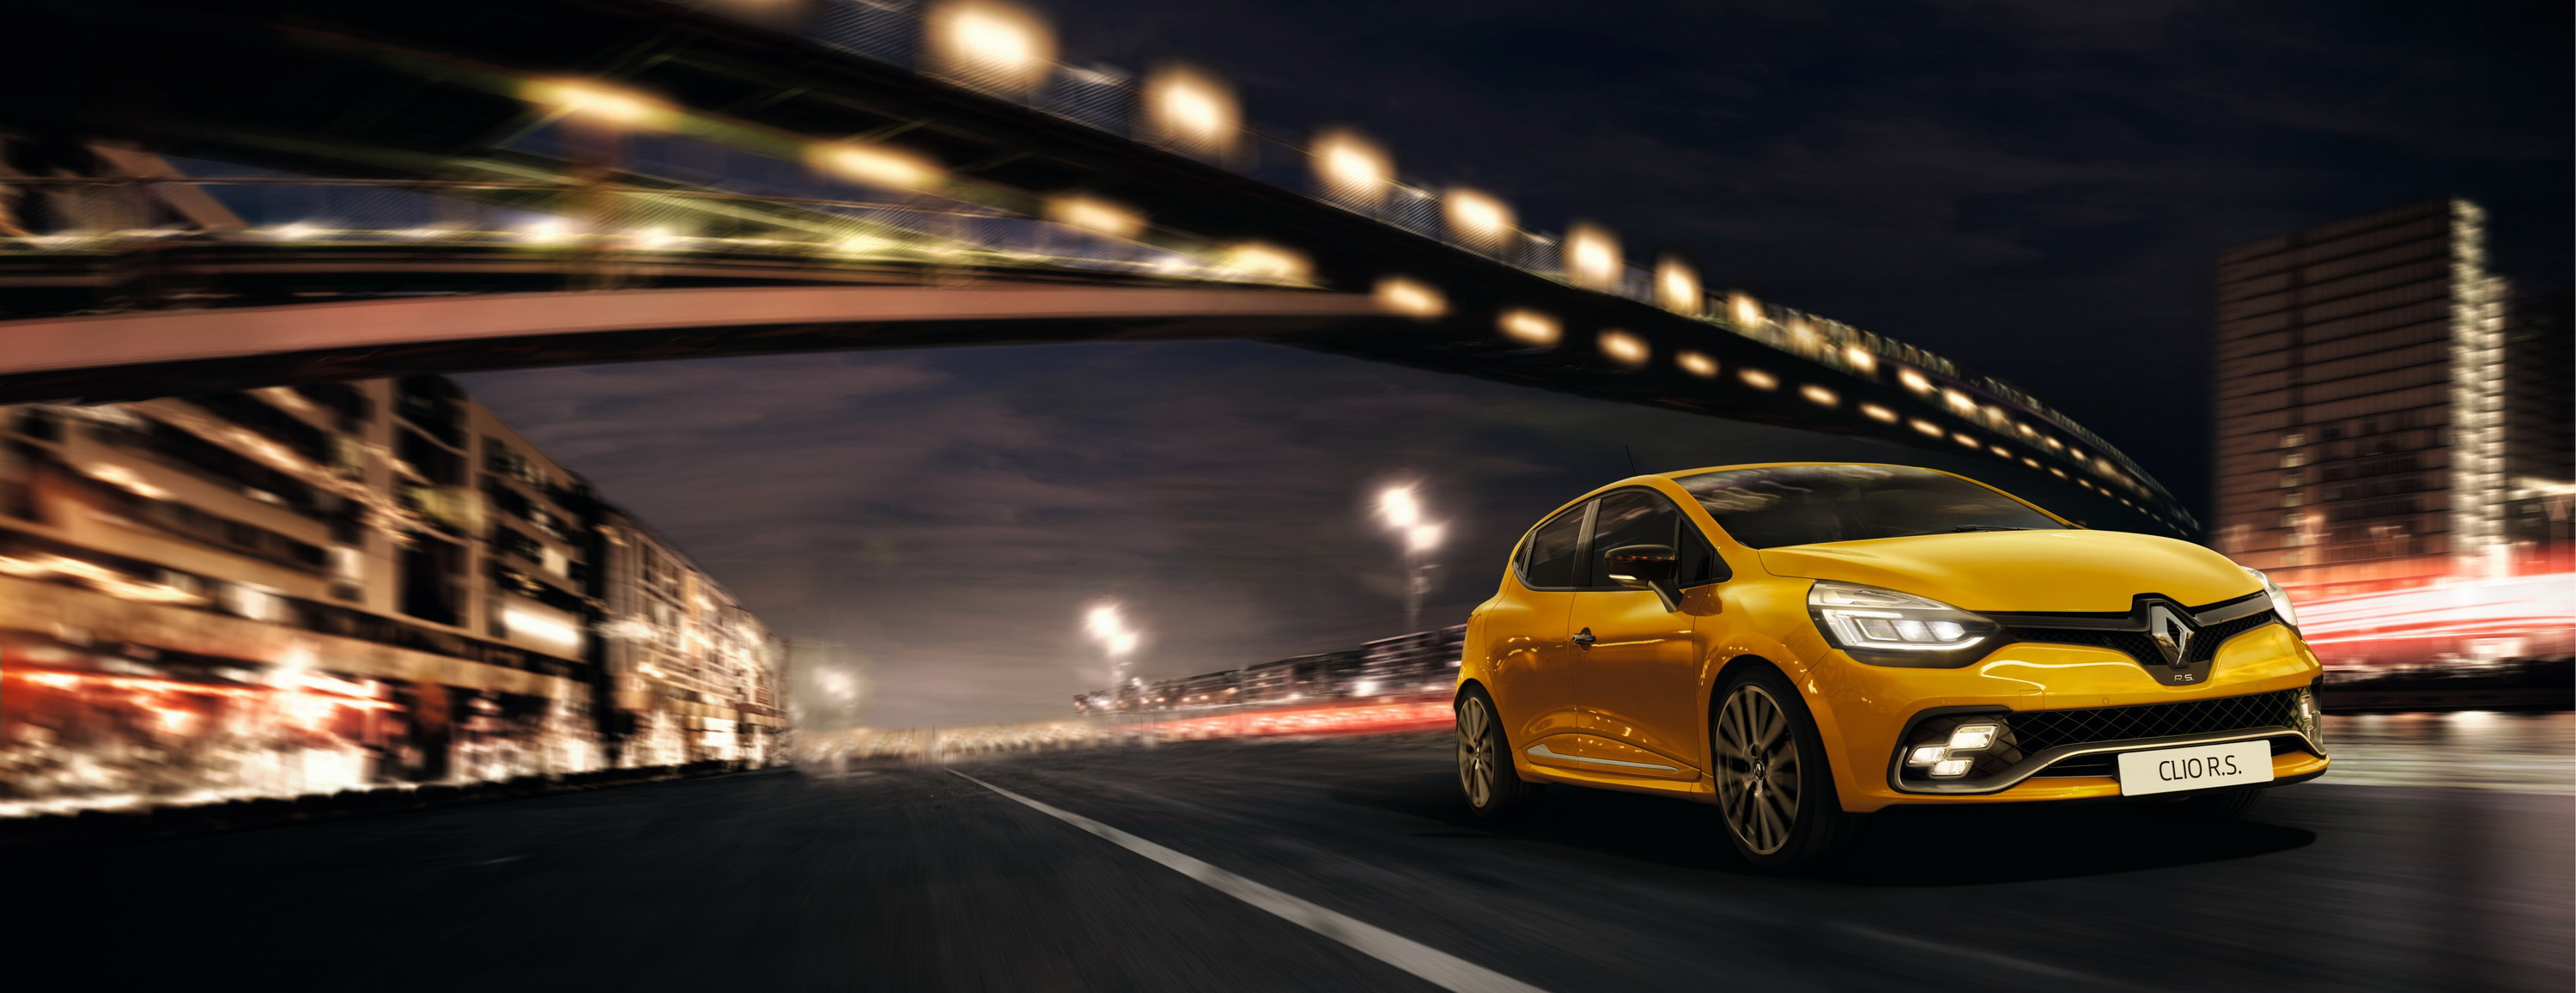 2017 Renault Clio R S  | Top Speed